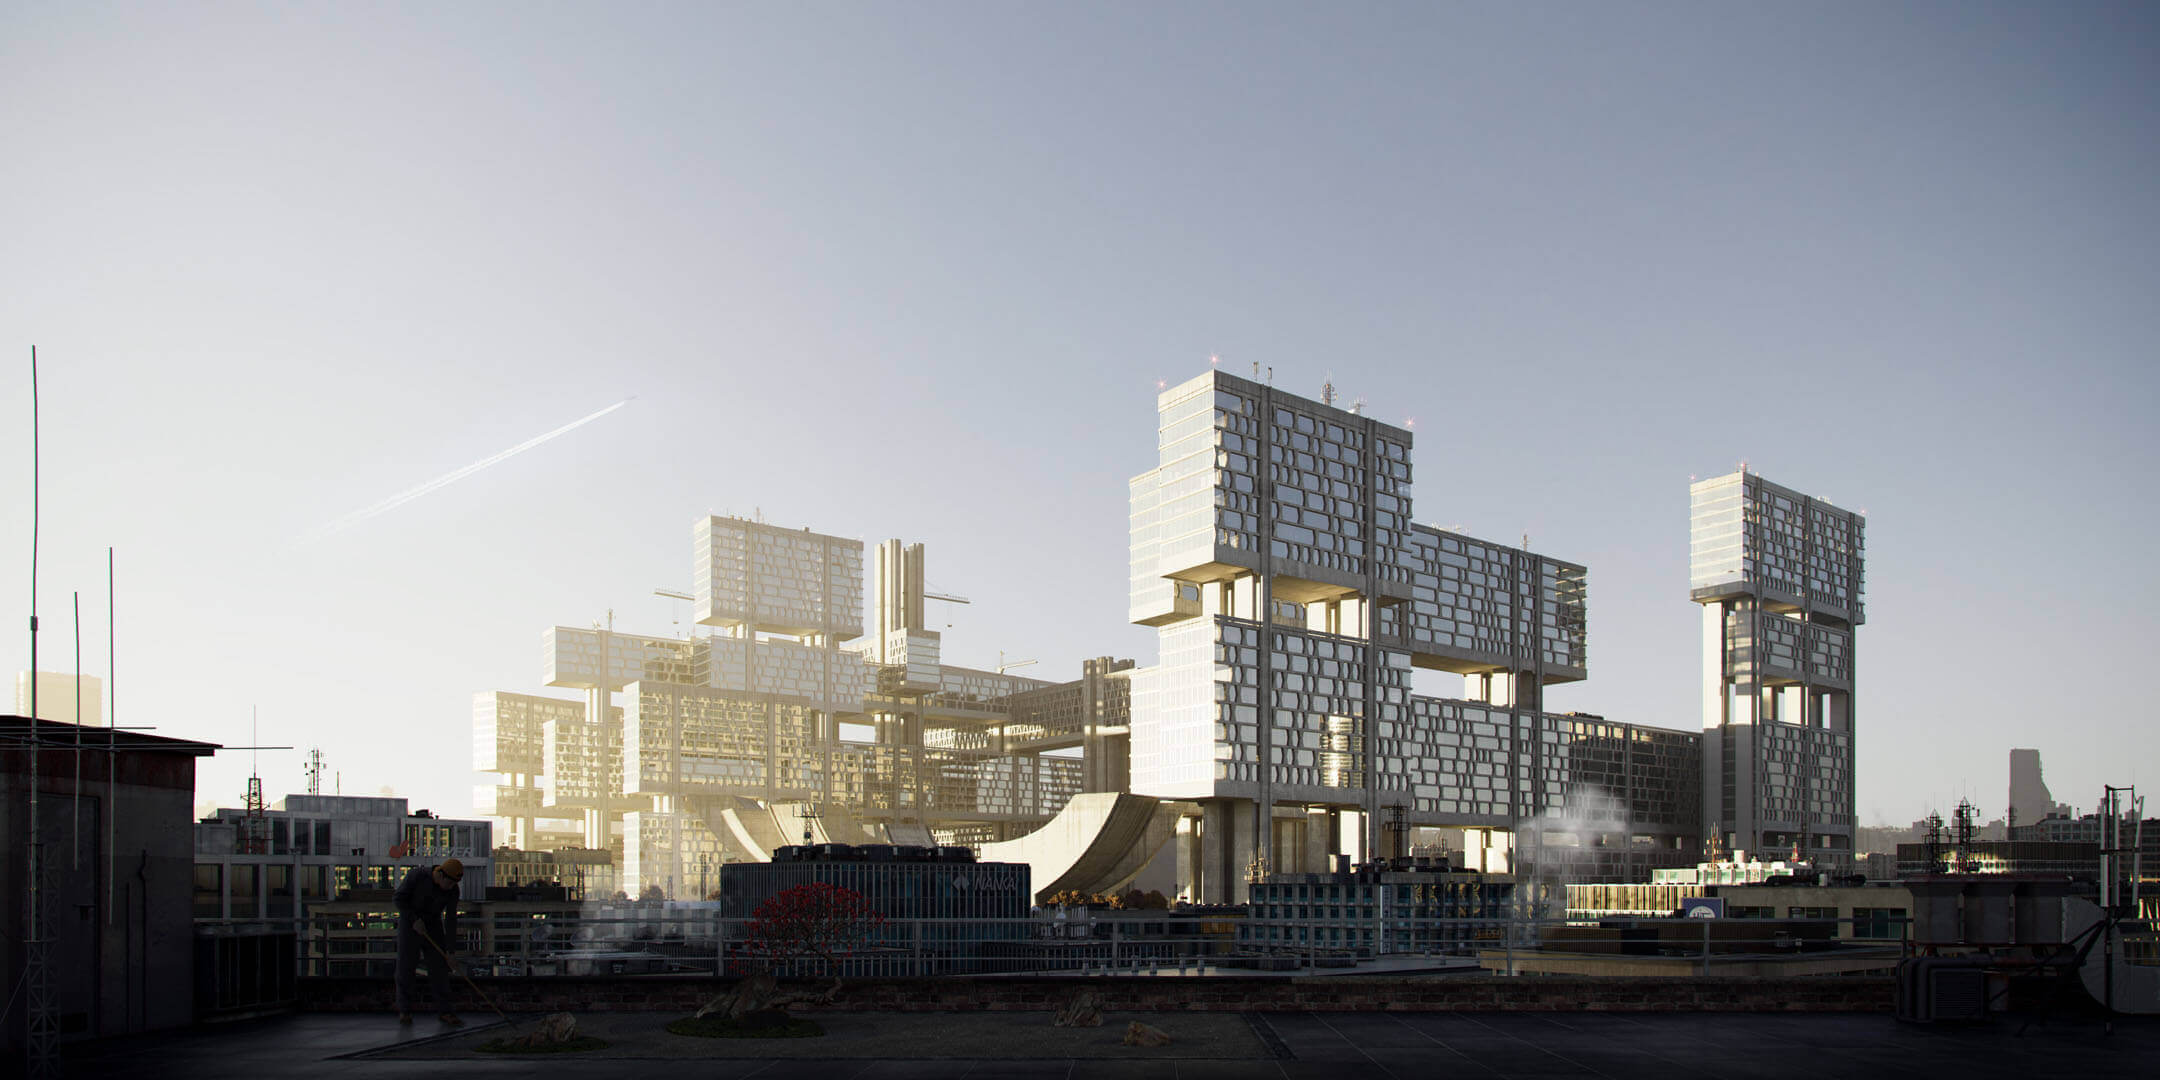 3D Architectural Rendering Of A Massive Apartment Complex